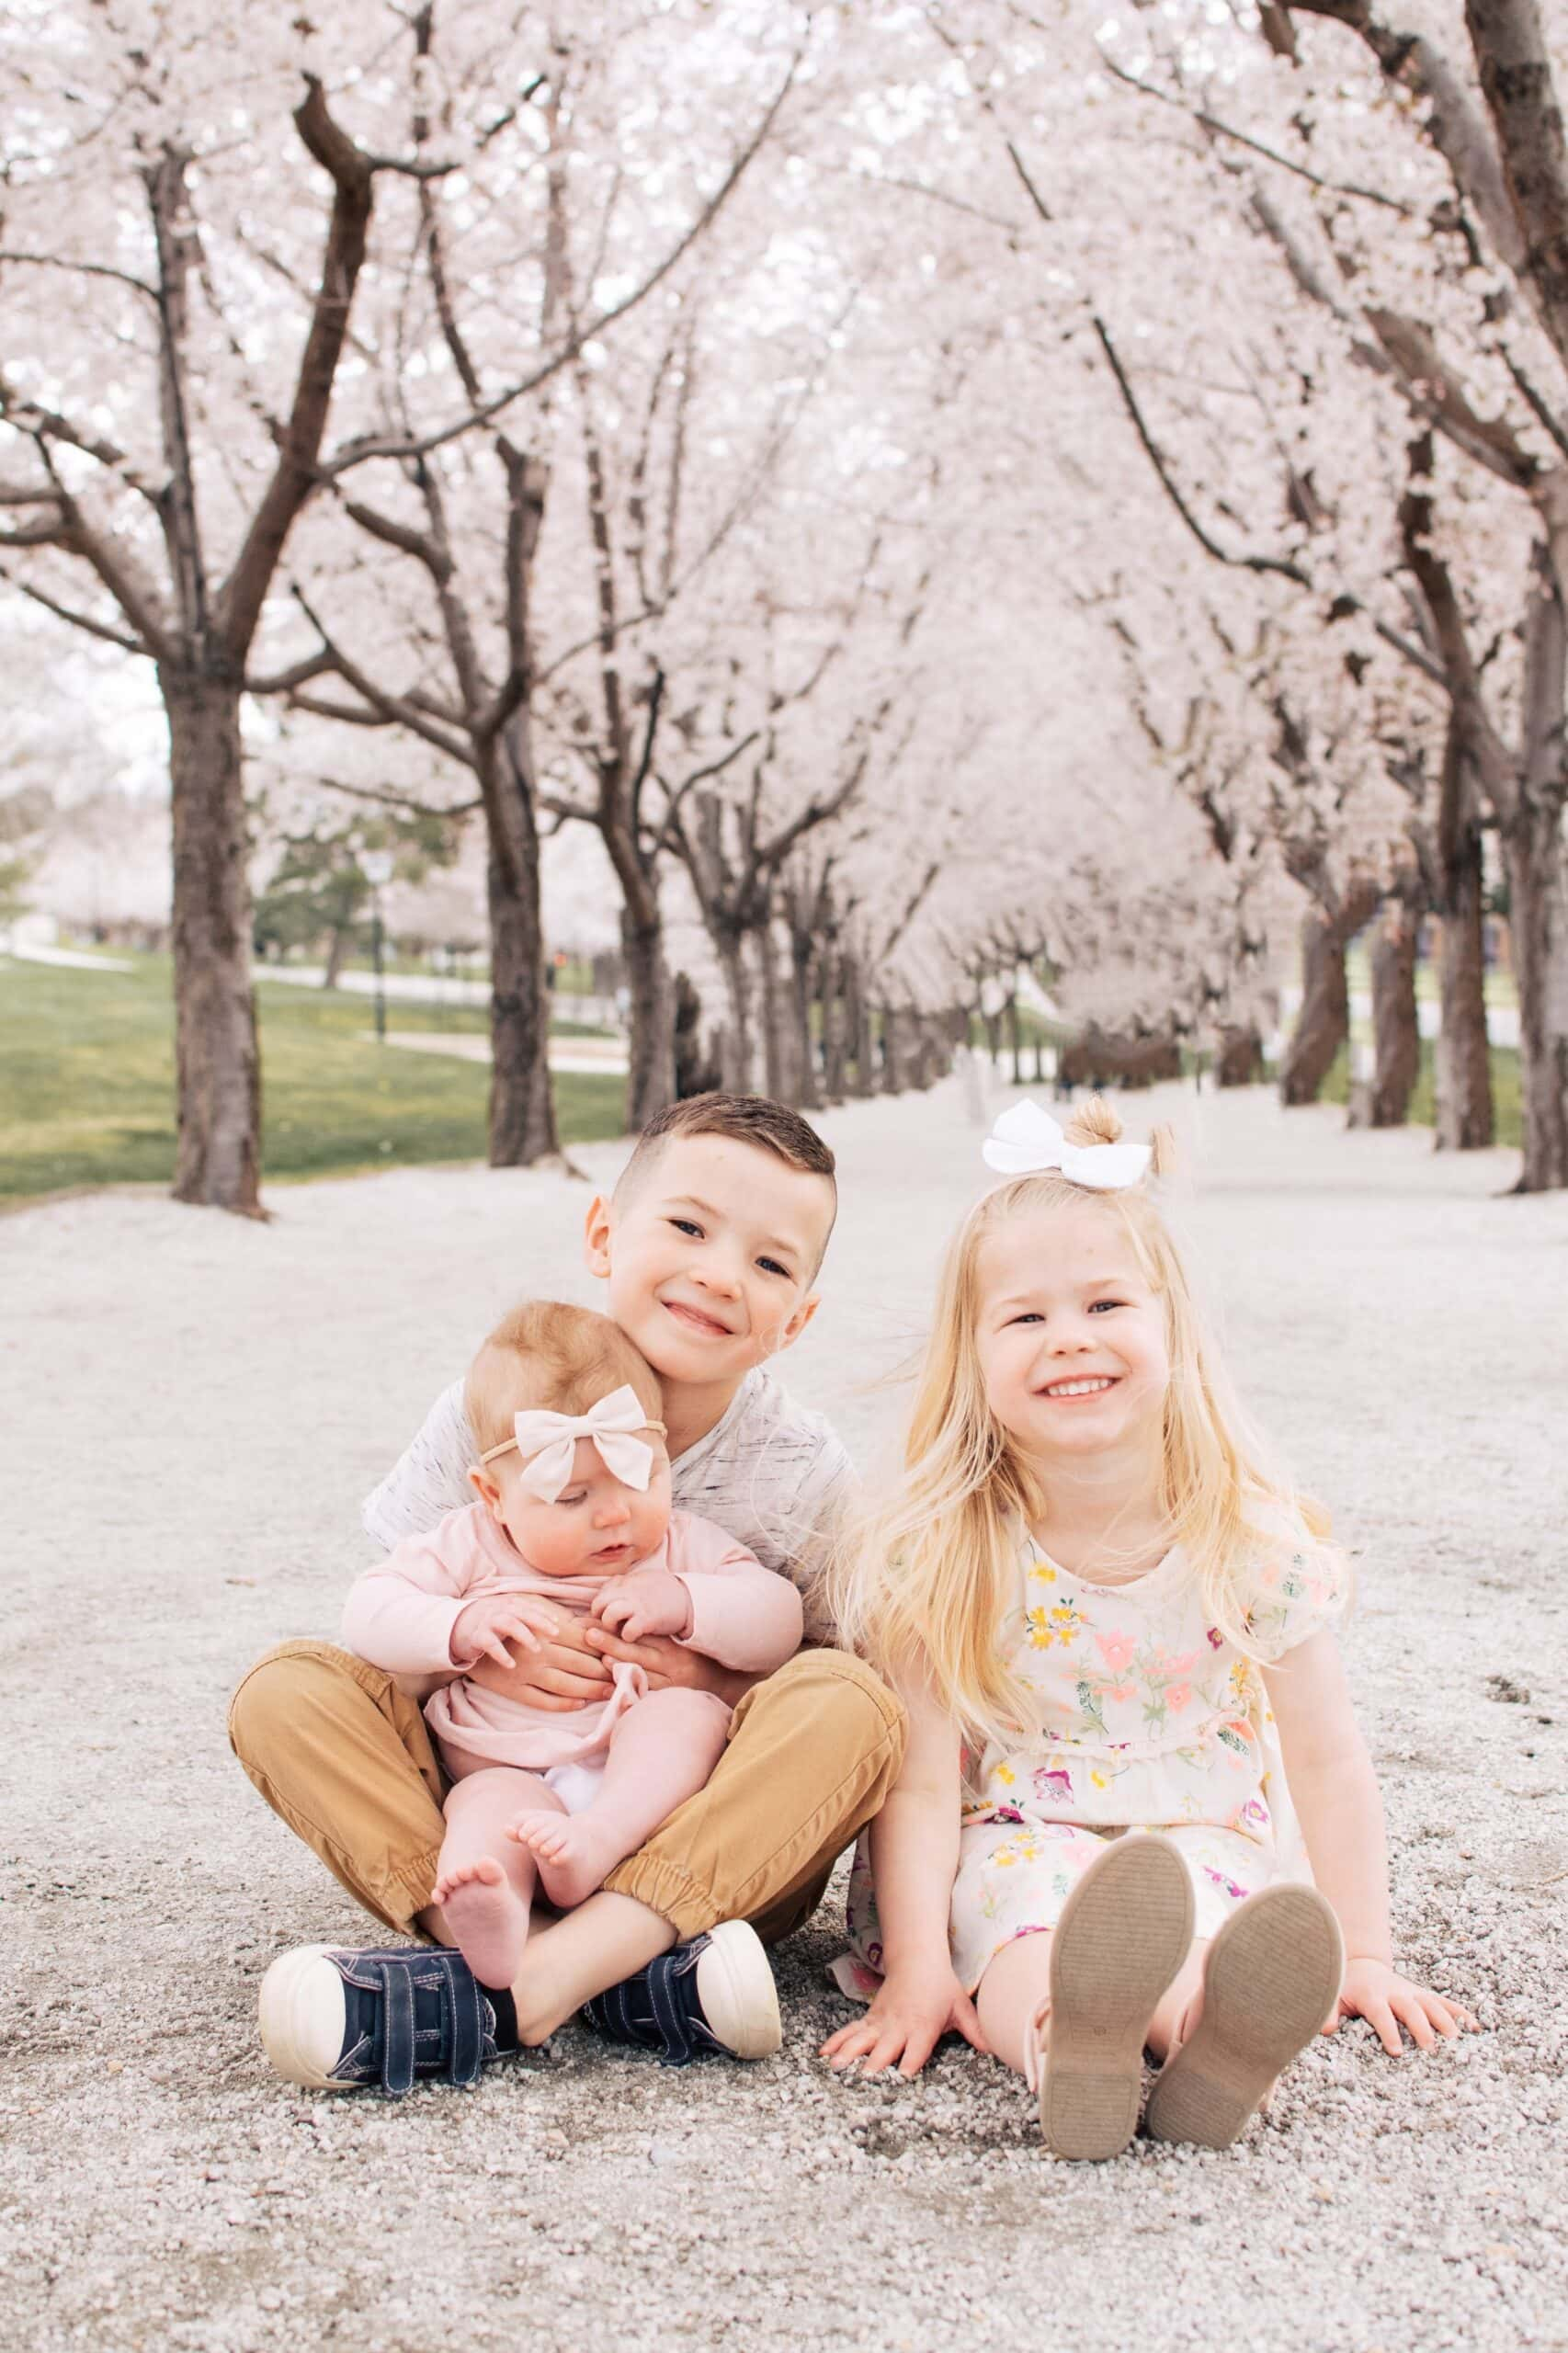 Kids smile for spring family photos.